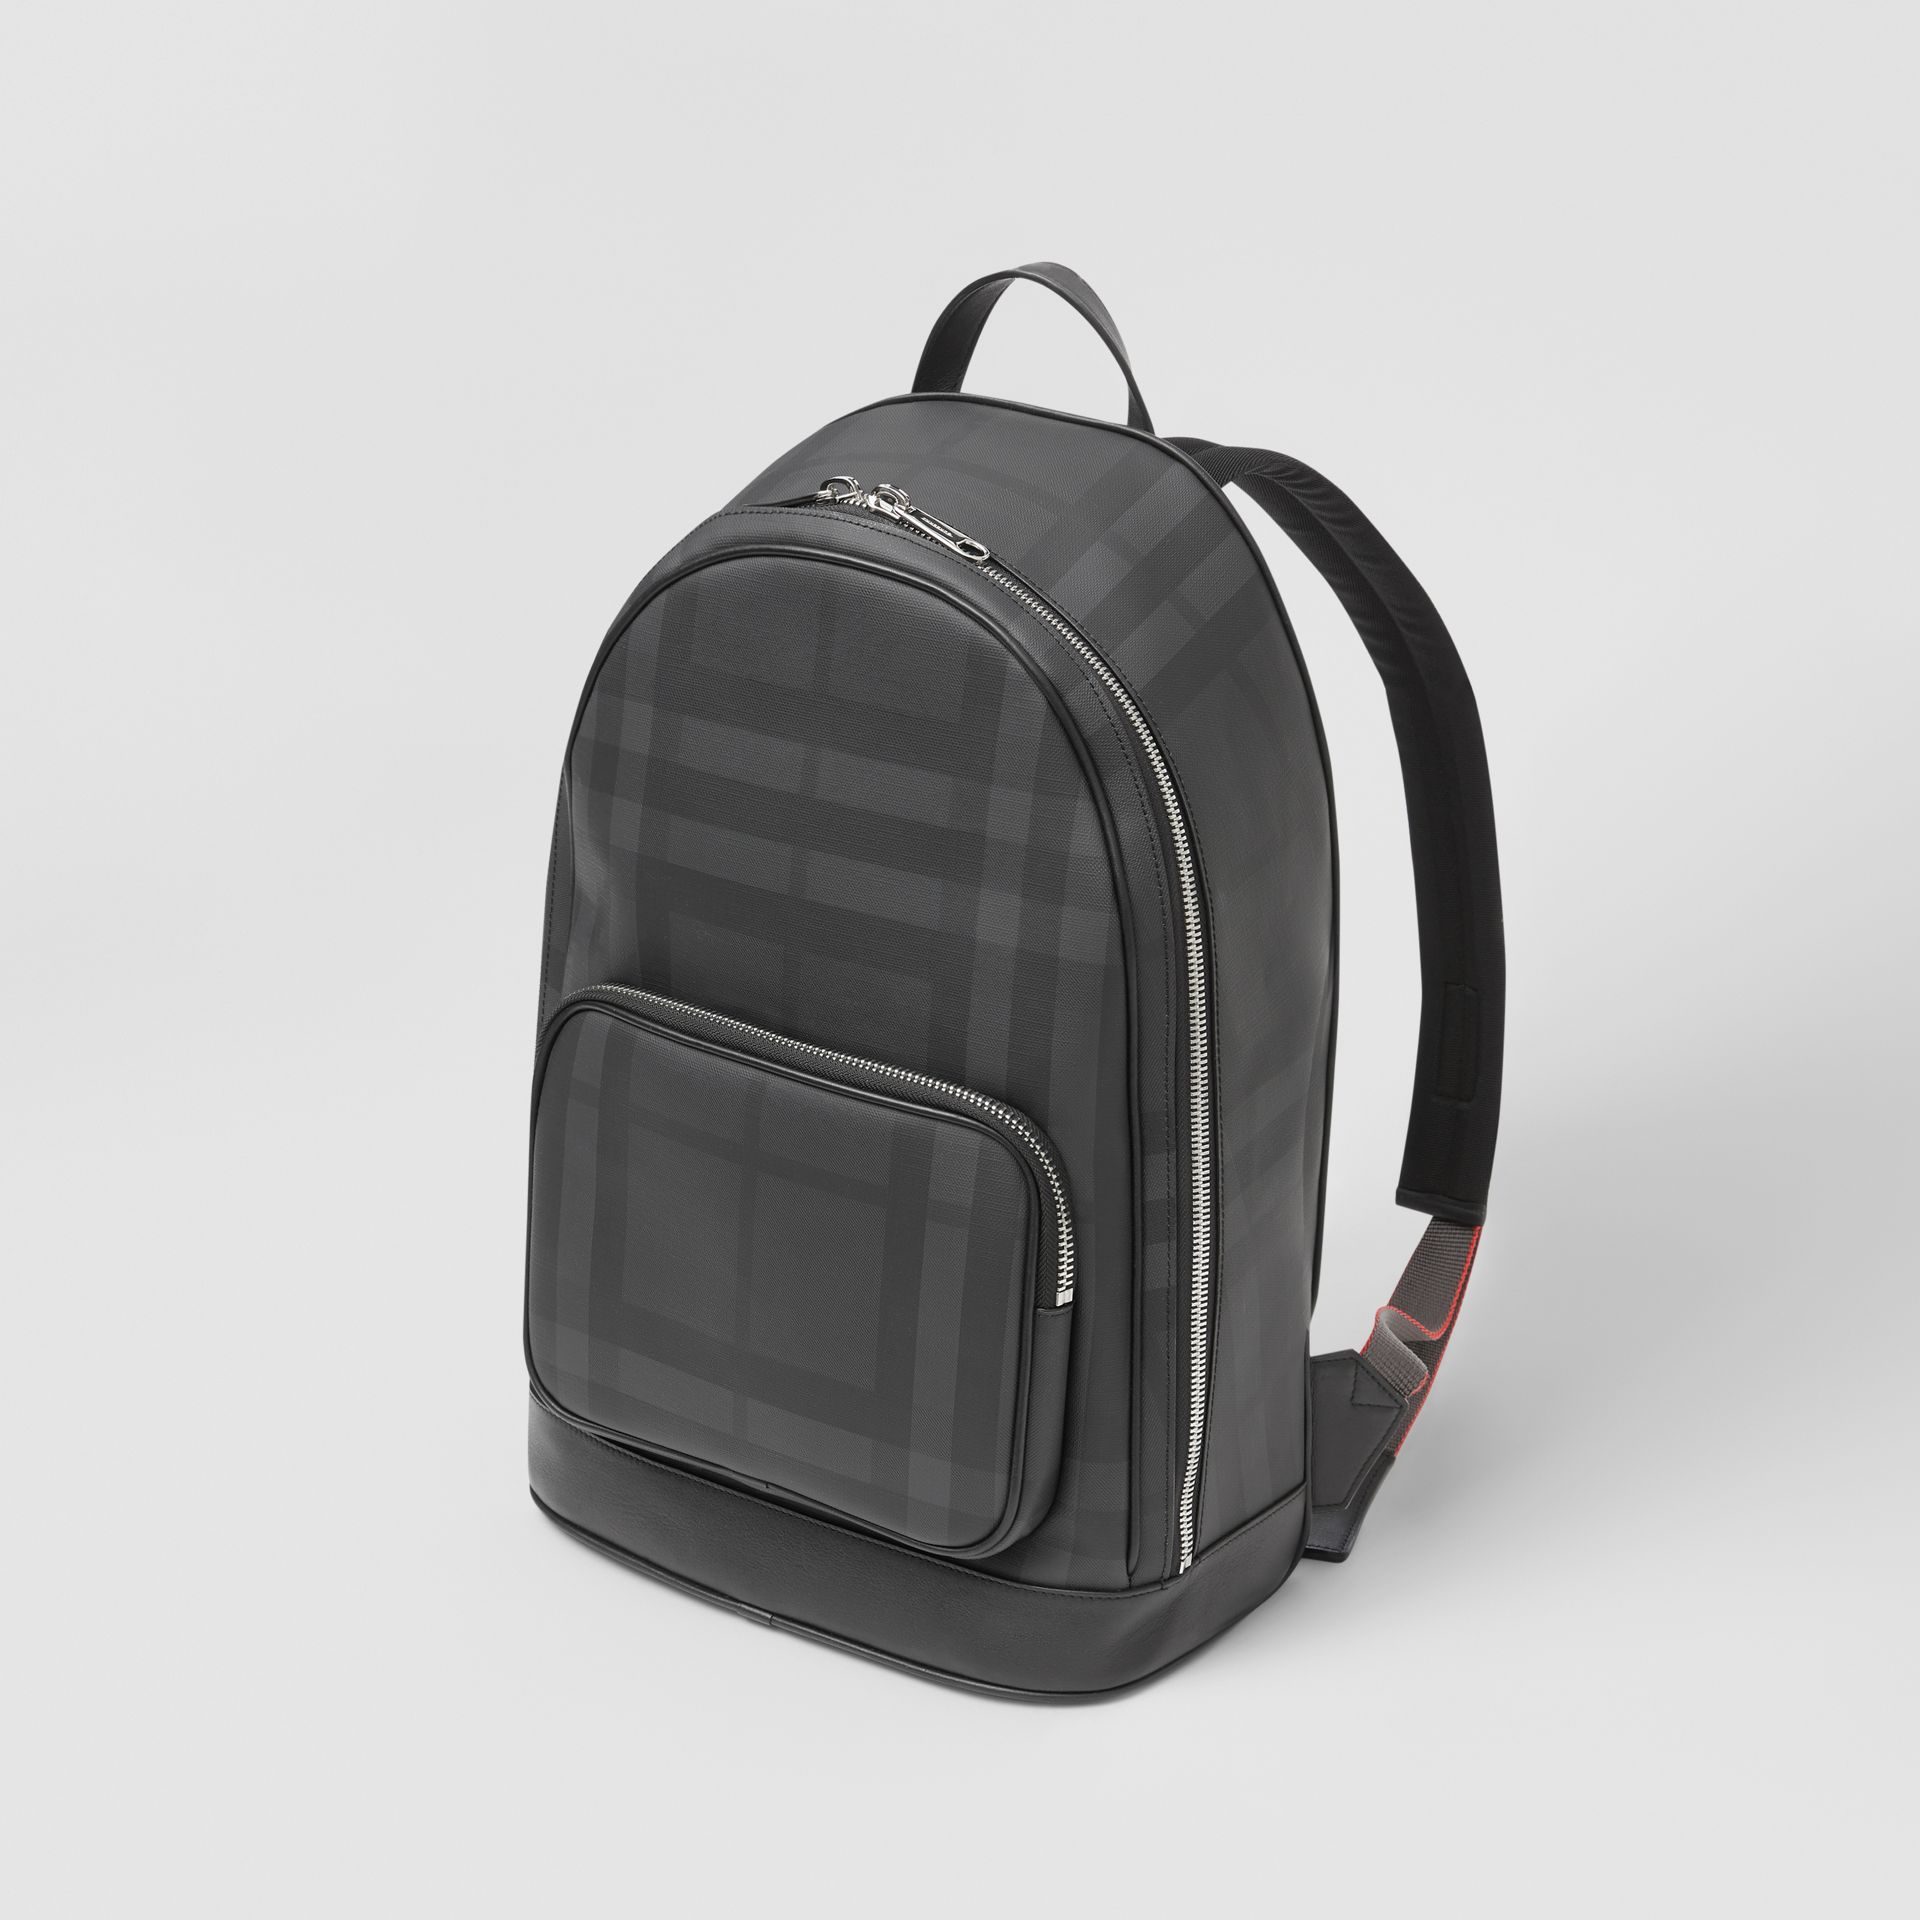 London Check and Leather Backpack in Dark Charcoal - Men | Burberry - gallery image 3